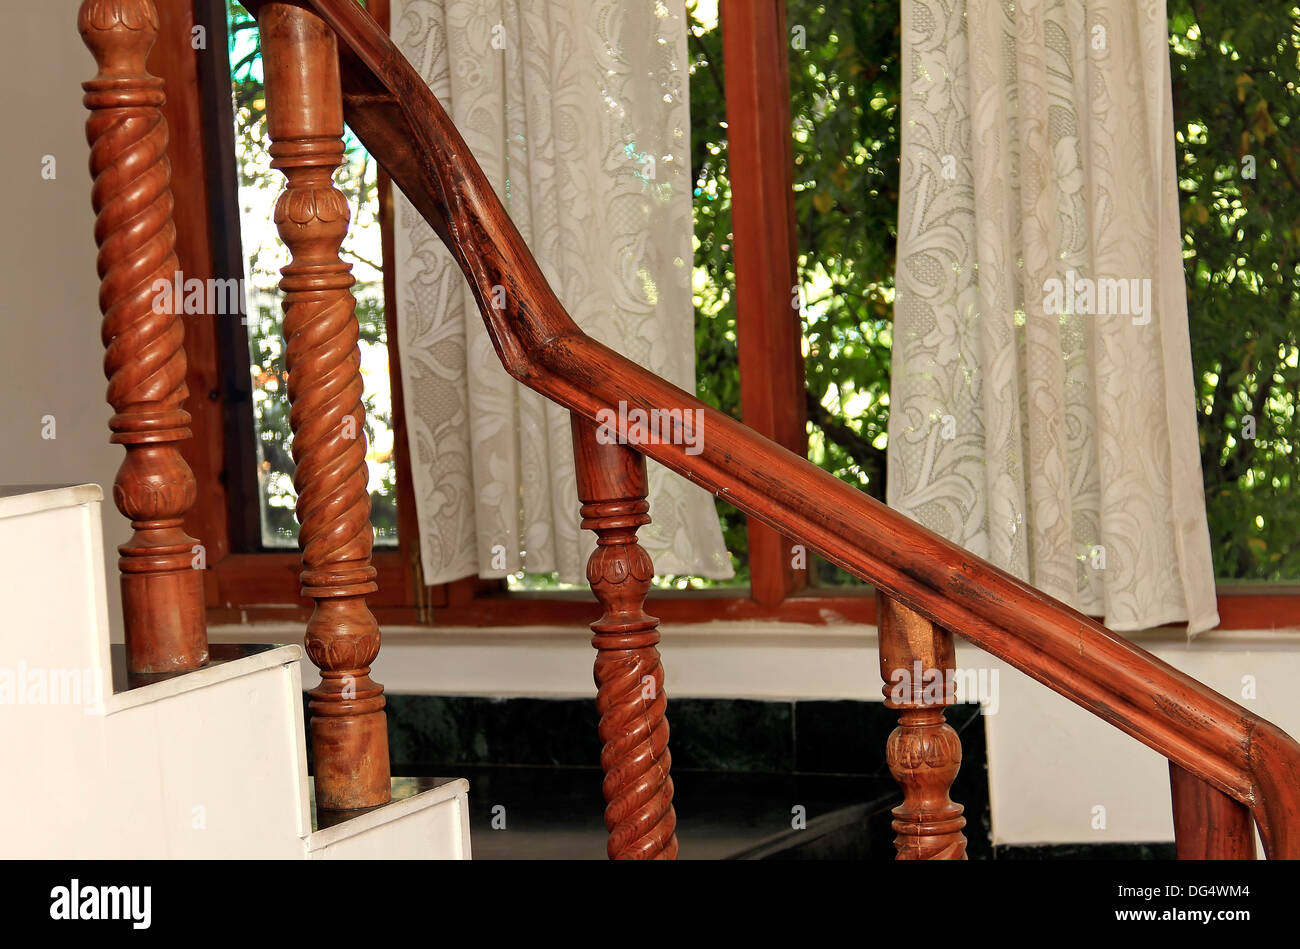 Interior luxury home - railing and  curtain - Stock Image